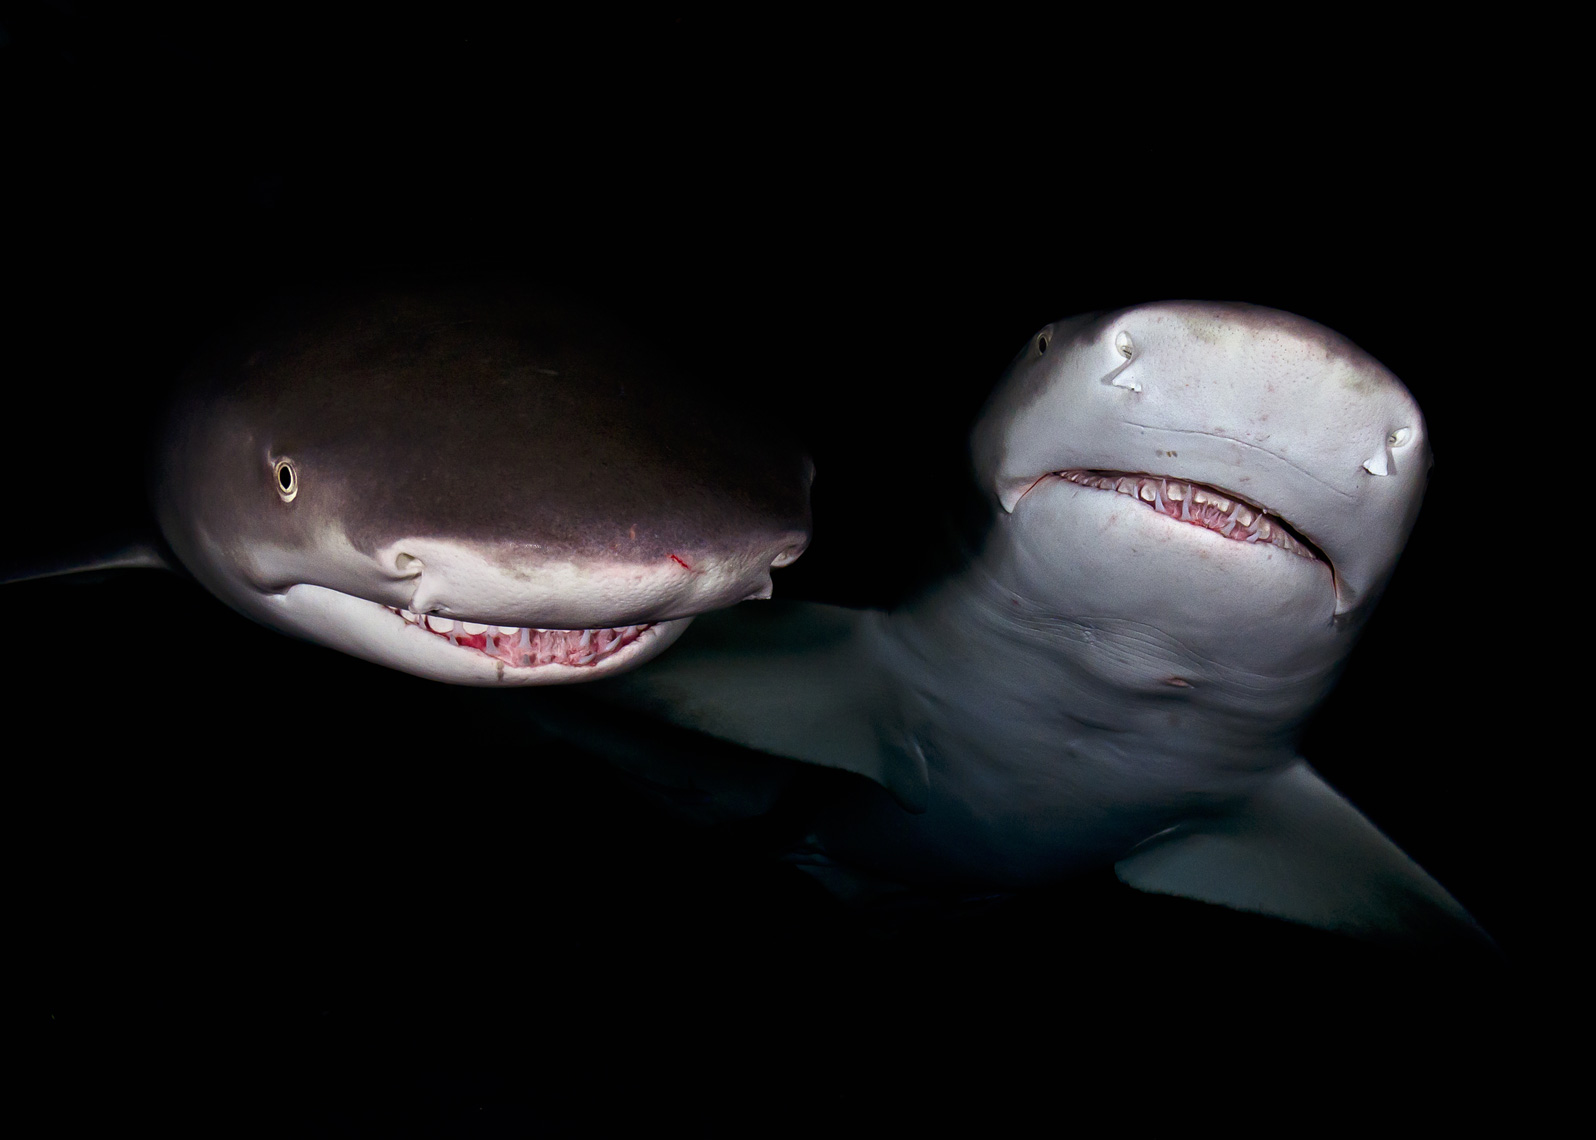 Tiger beach - lemon sharks at night